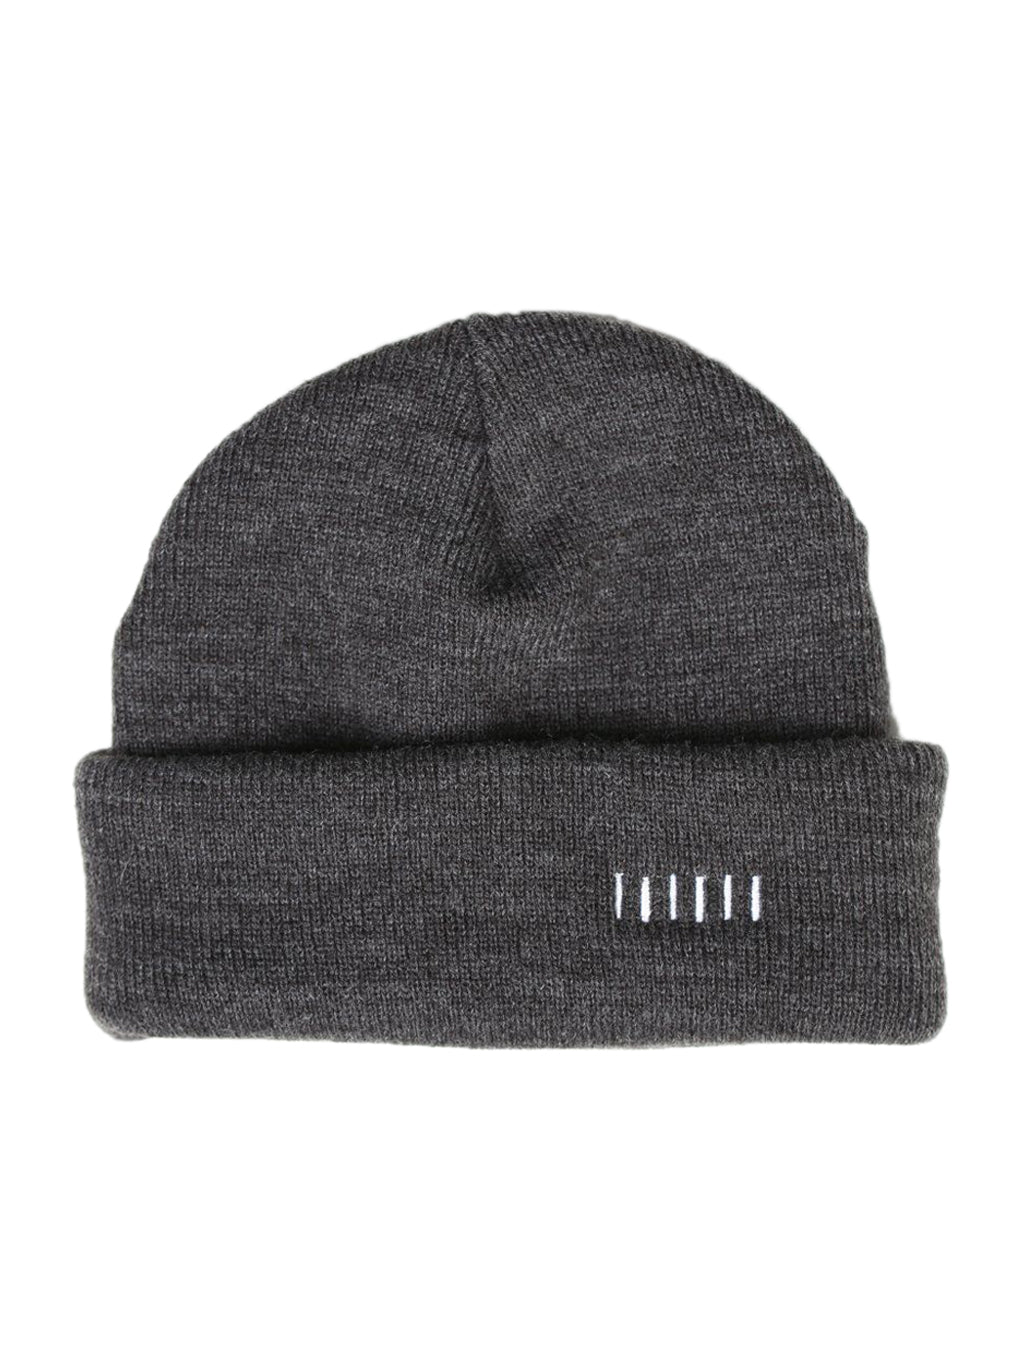 Charcoal Two-Way Beanie